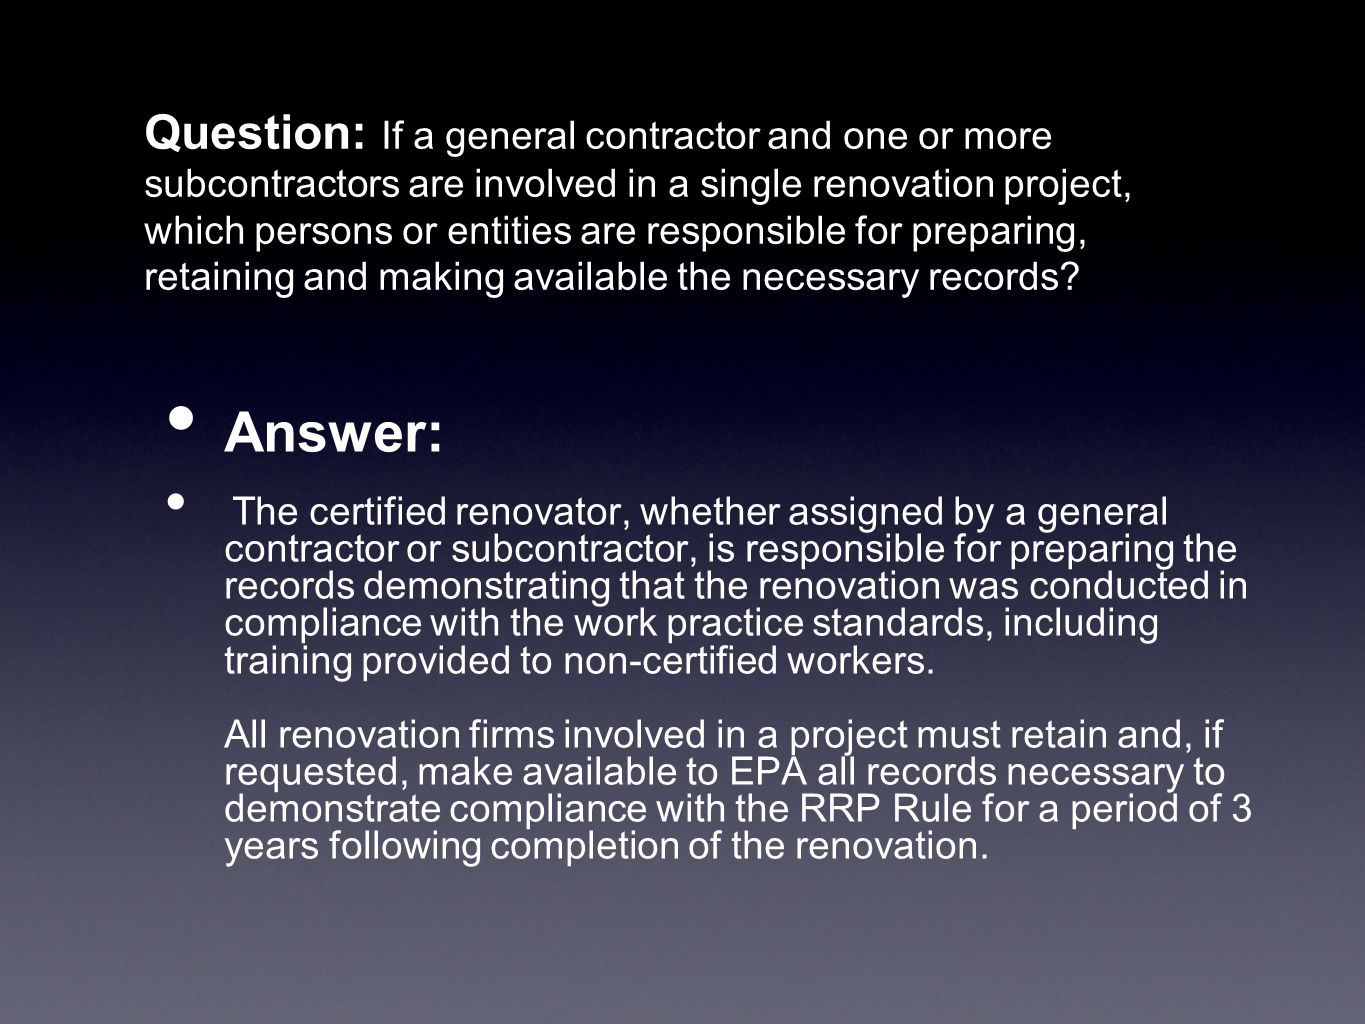 Question: If a general contractor and one or more subcontractors are involved in a single renovation project, which persons or entities are responsibl